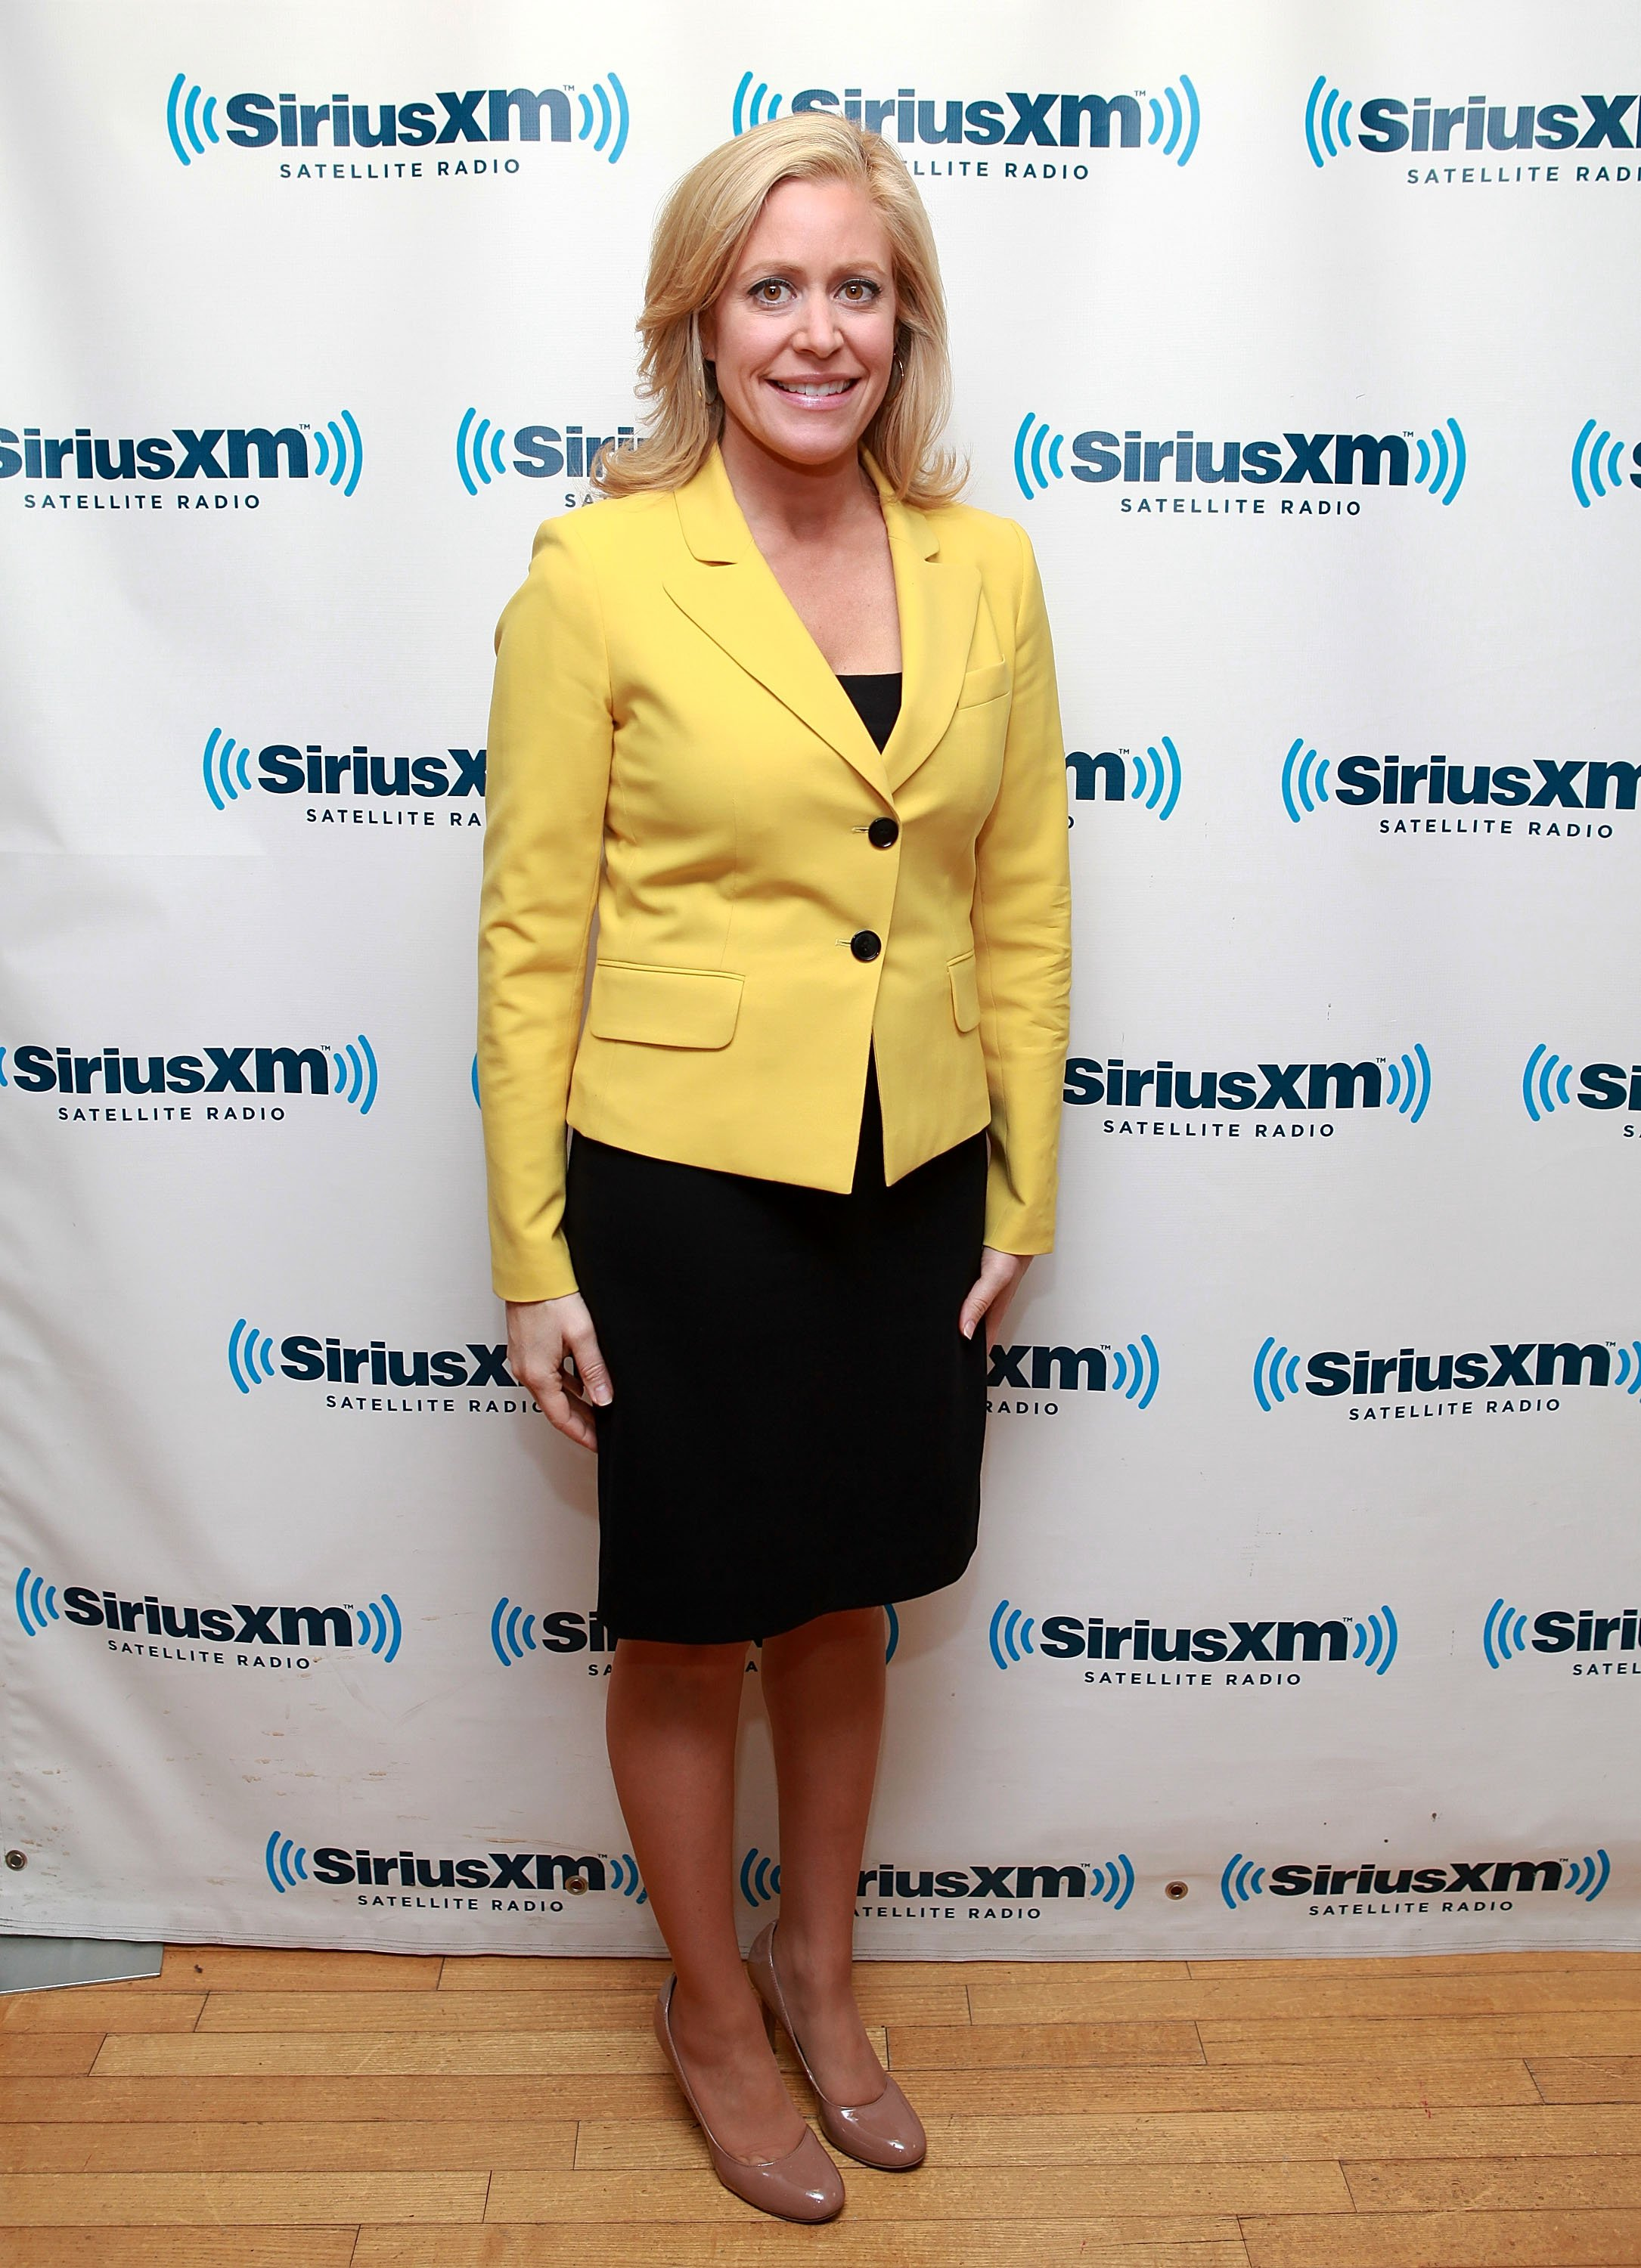 Melissa Francis visits the SiriusXM Studios on November 13, 2012 in New York City. | Photo by Robin Marchant/Getty Images